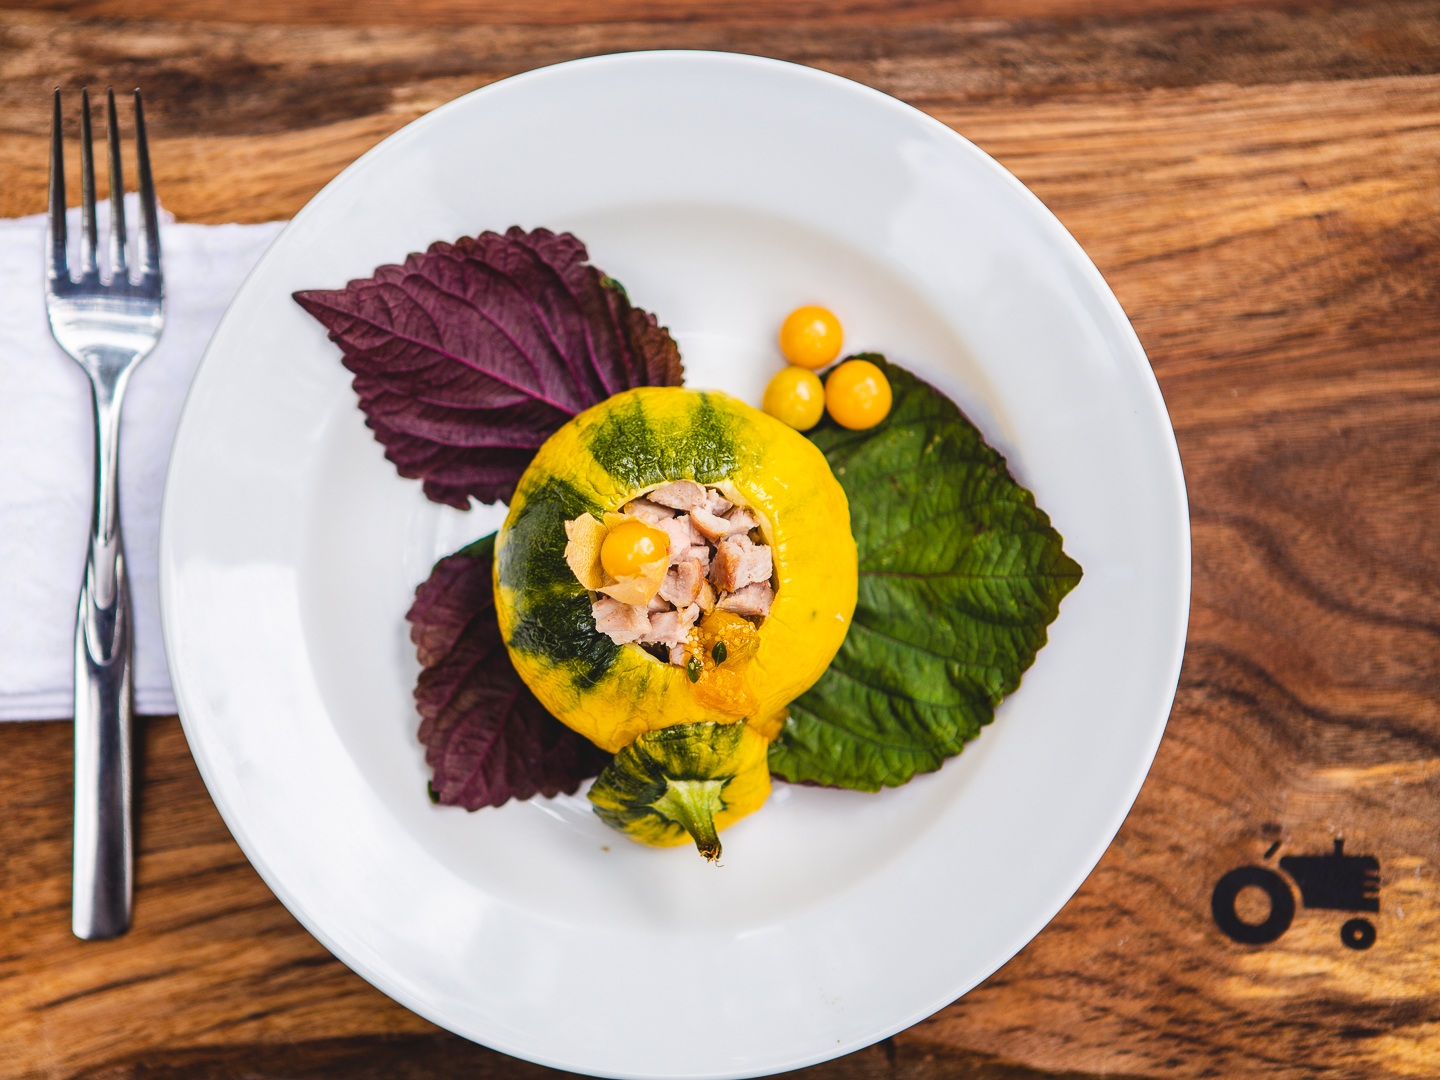 Private Dinners & Catering - We are highly experienced in custom tasting menus, which comes to your home and is focused on the heights of Ontario seasonality.CLICK HERE FOR MORE INFORMATION